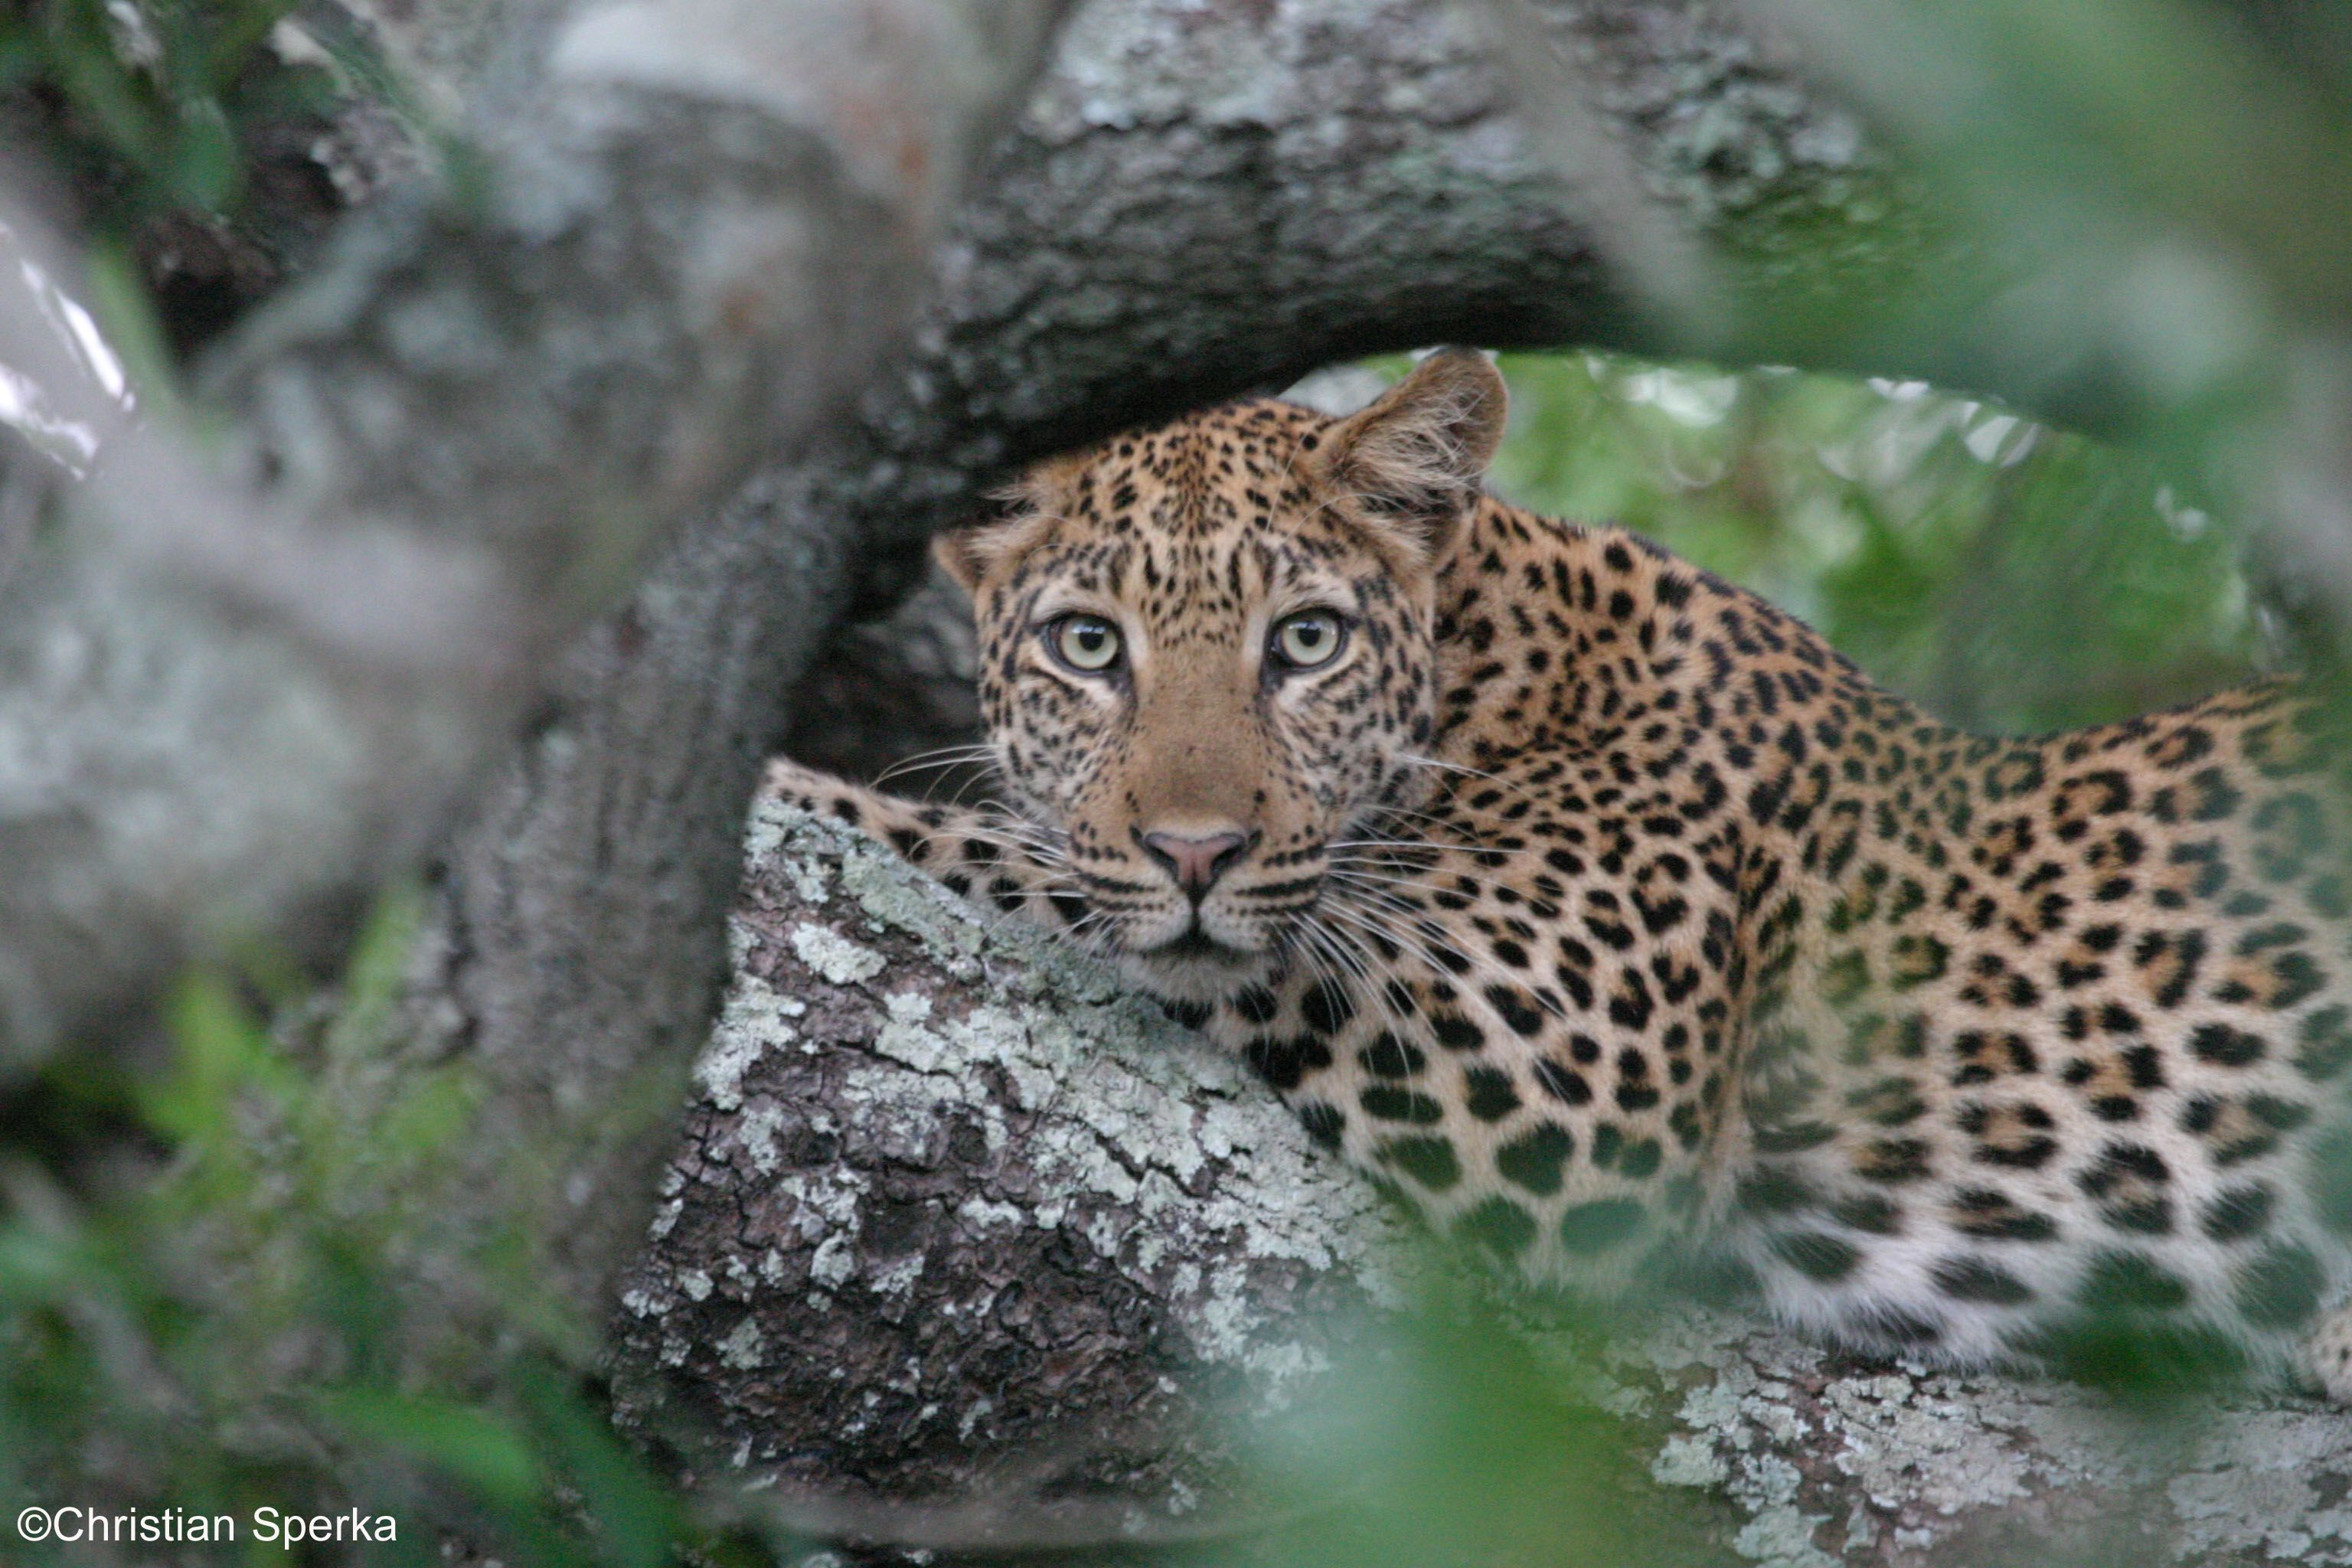 Leopards are native to 35 countries in Sub Saharan Africa